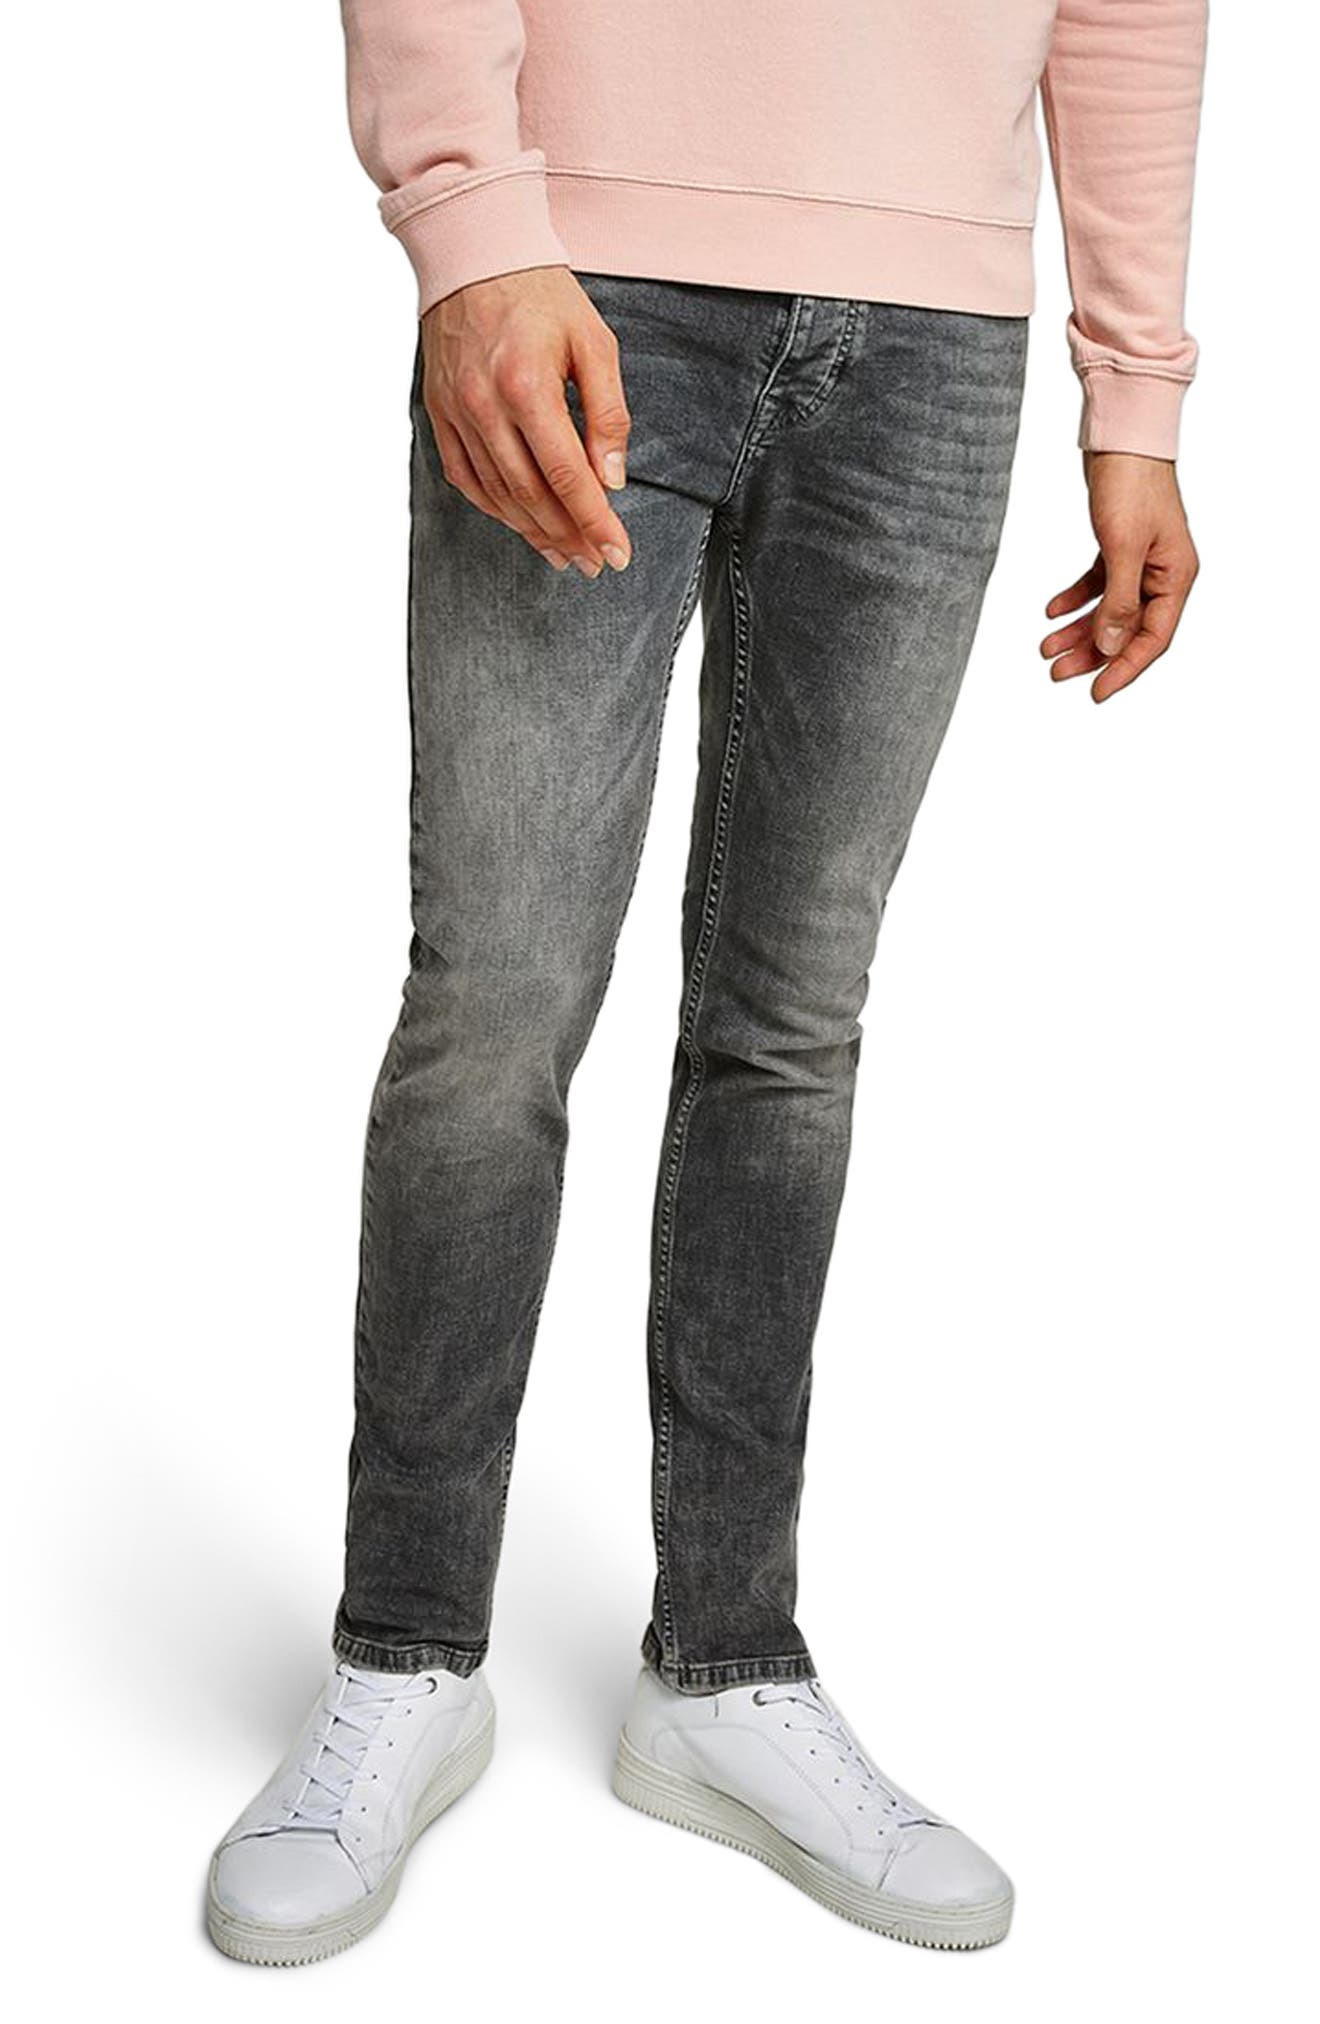 Grey Stretch Skinny Jeans,                             Main thumbnail 1, color,                             Grey